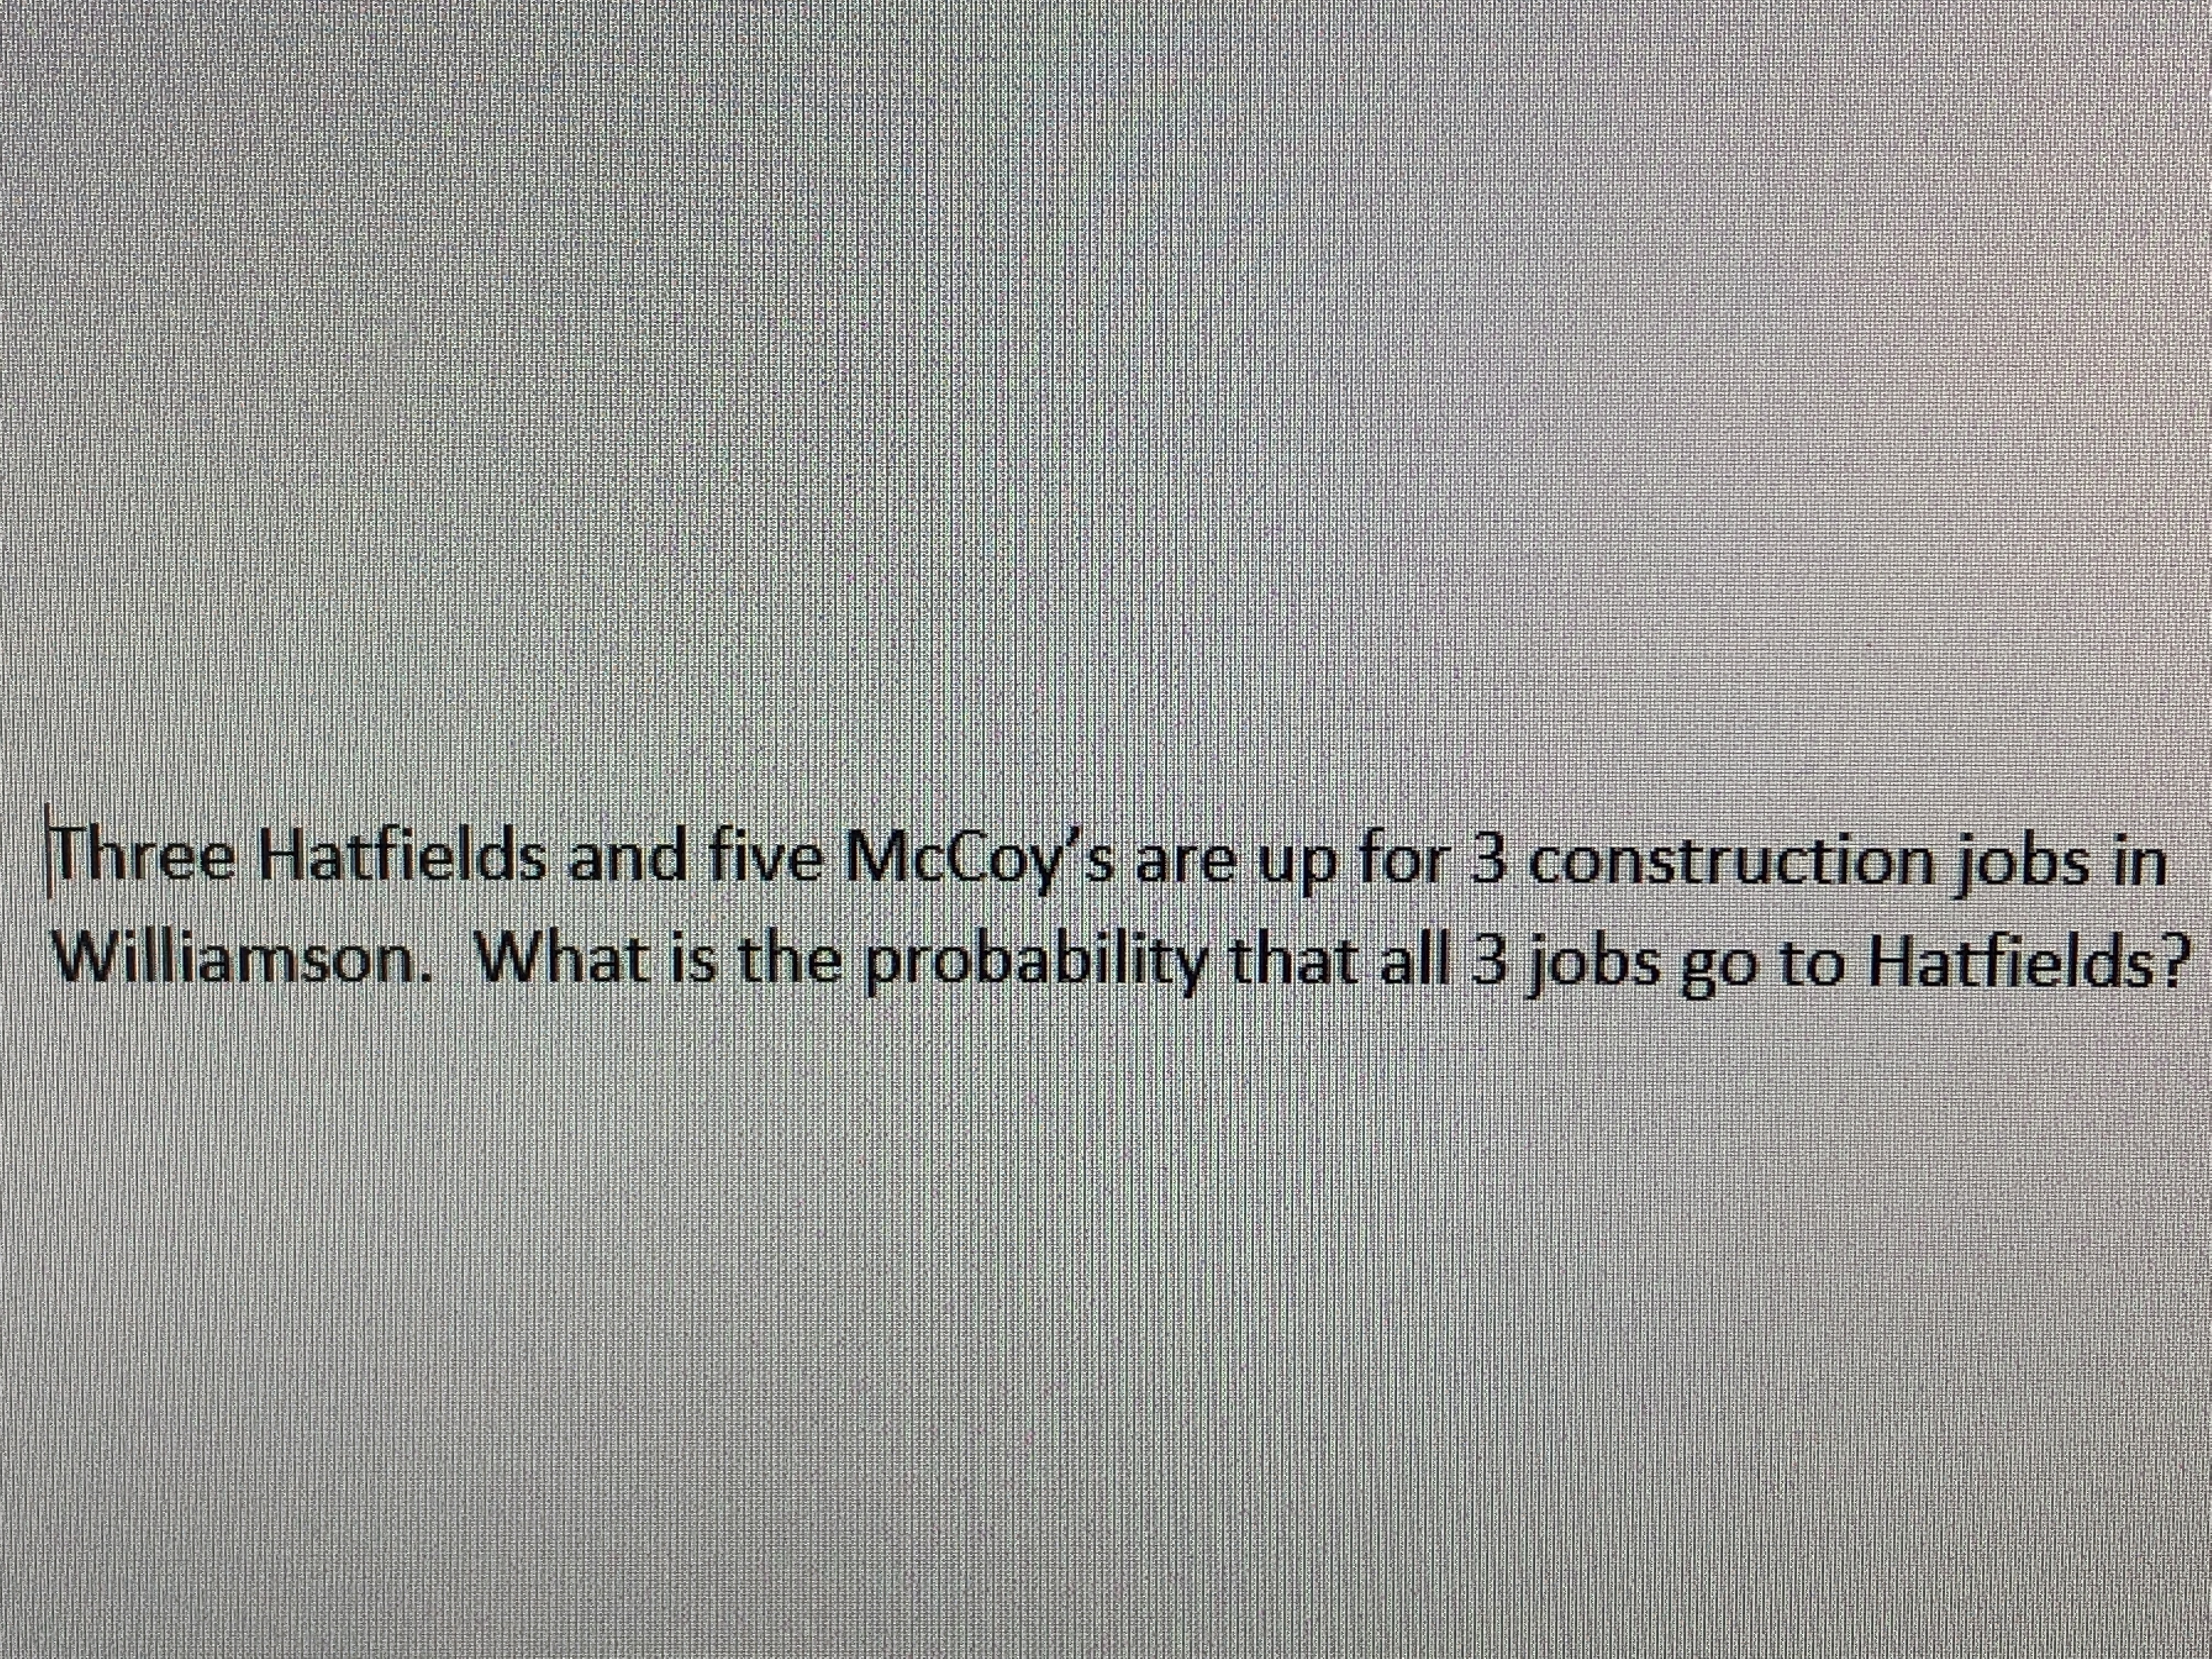 Three Hatfields and five McCoy's are up for 3 construction jobs in Williamson. What is the probability that all 3 jobs go to Hatfields?